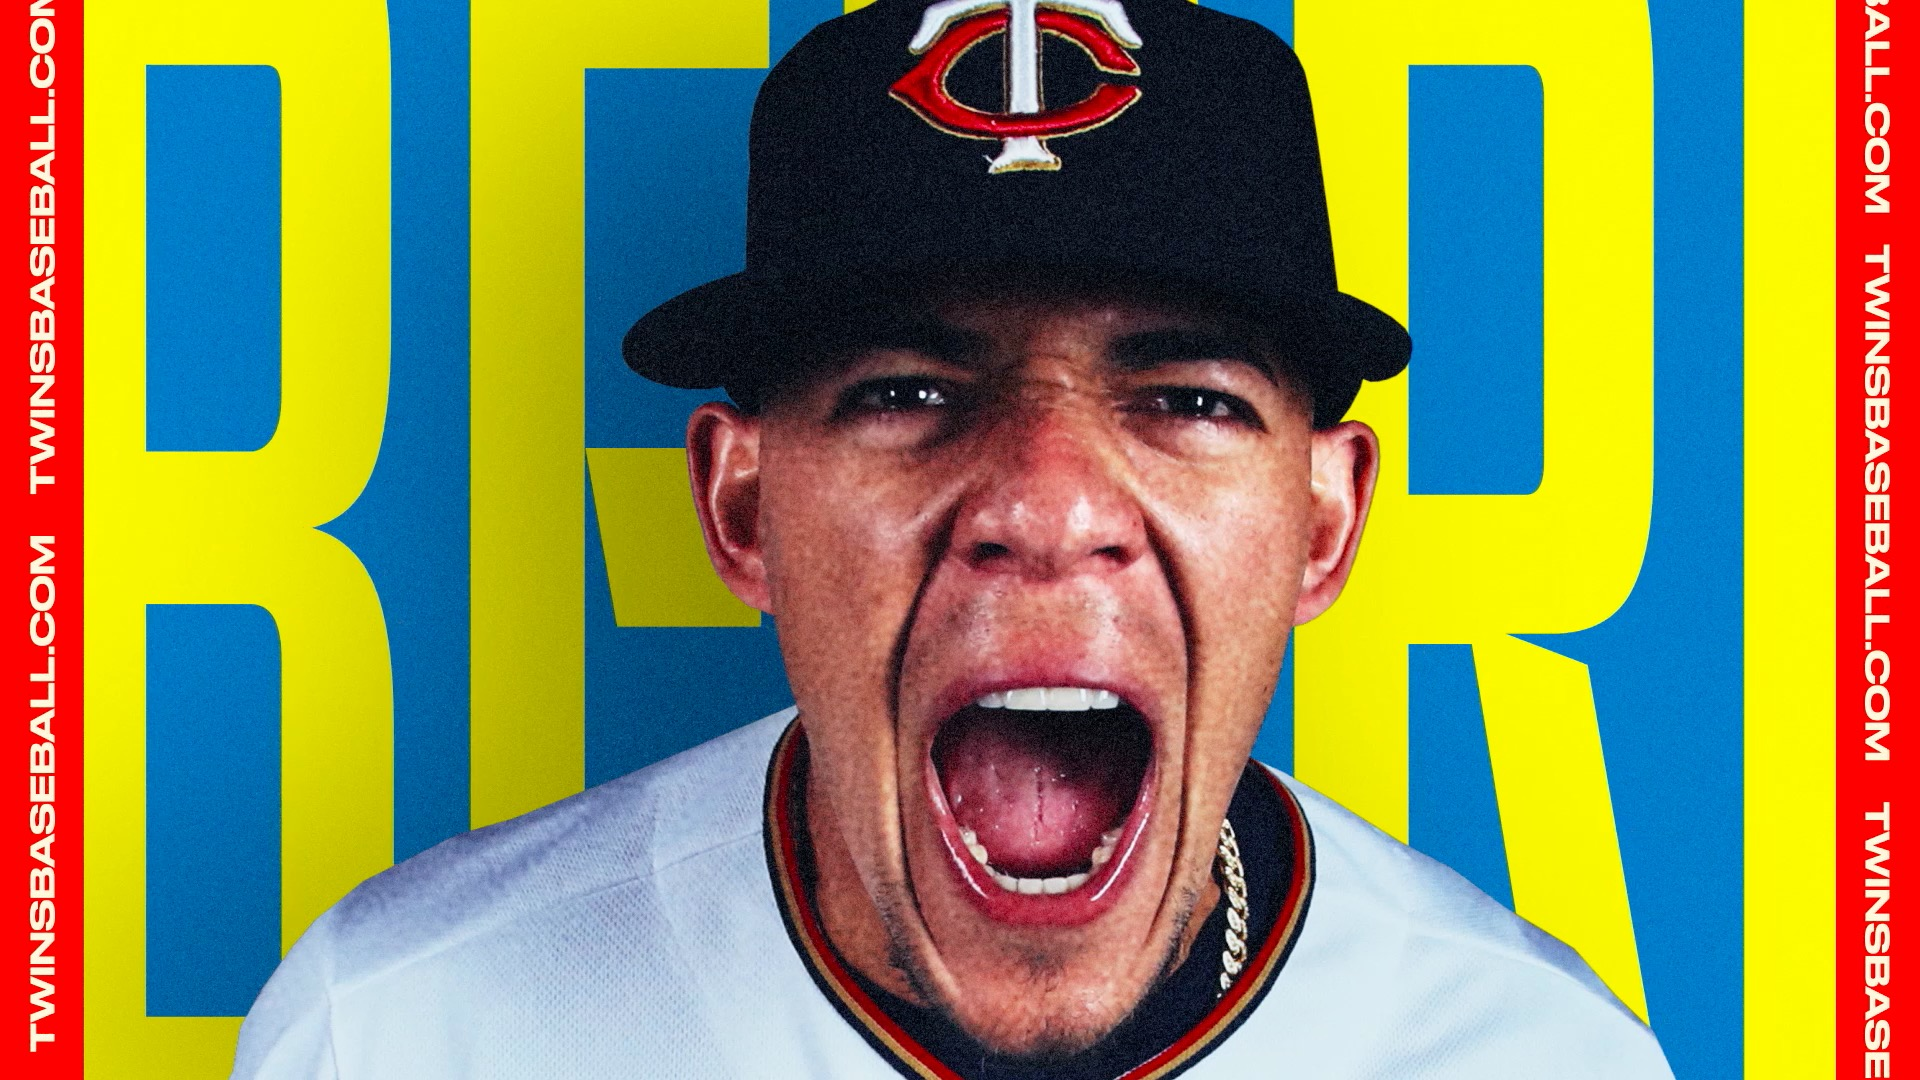 How Carmichael Lynch Gave the Surging Minnesota Twins a Fresh Pop-Art Feel | Muse by Clio